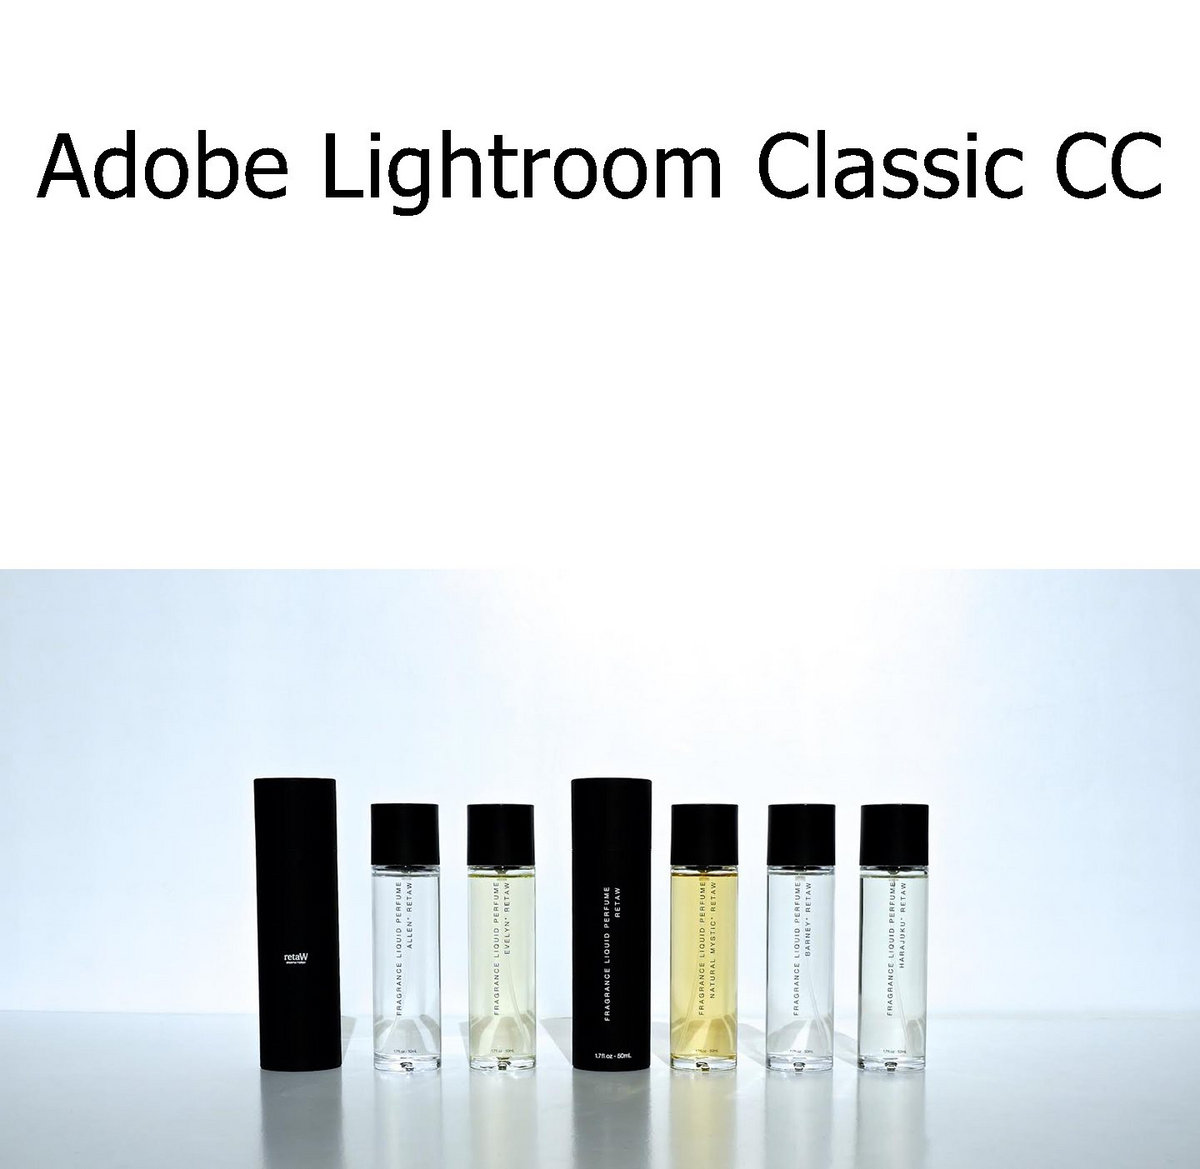 on 10 11 4 adobe lightroom classic cc v 8 2 1 where download